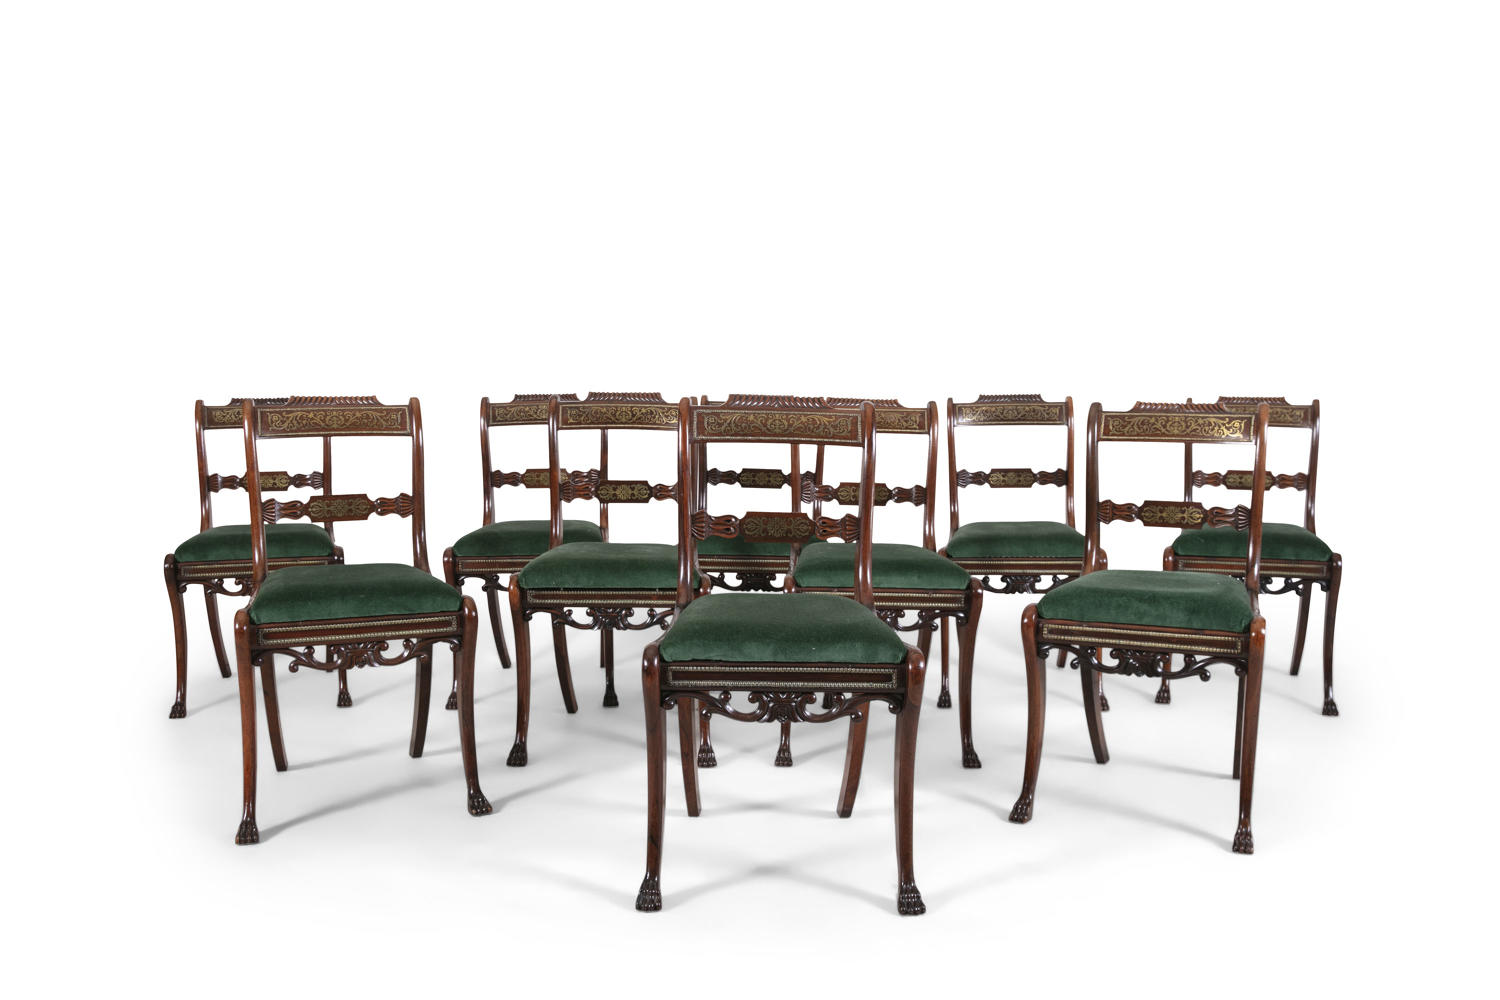 A Superb Set of 10 Regency Brass inlaid Dining Chairs